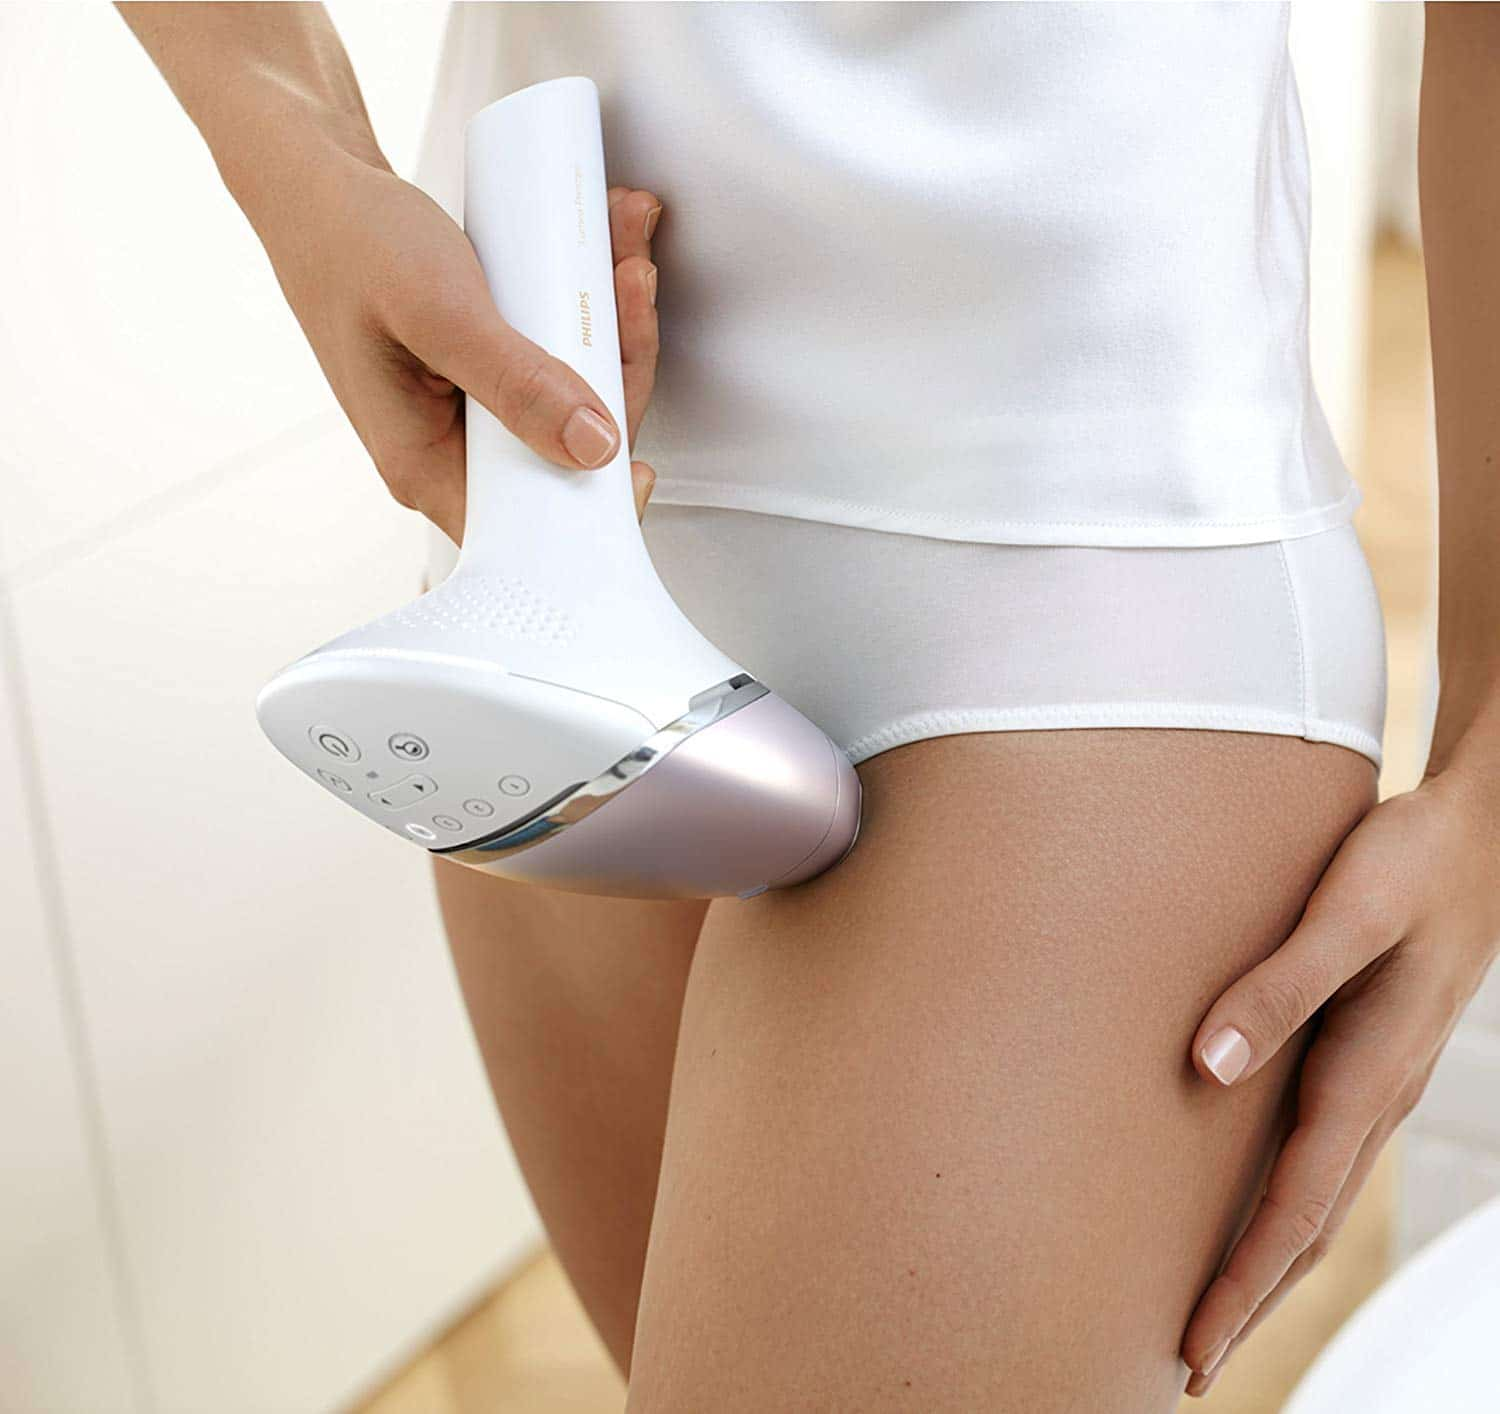 Philips Lumea Models Which One Is Better Philips Lumea Experts